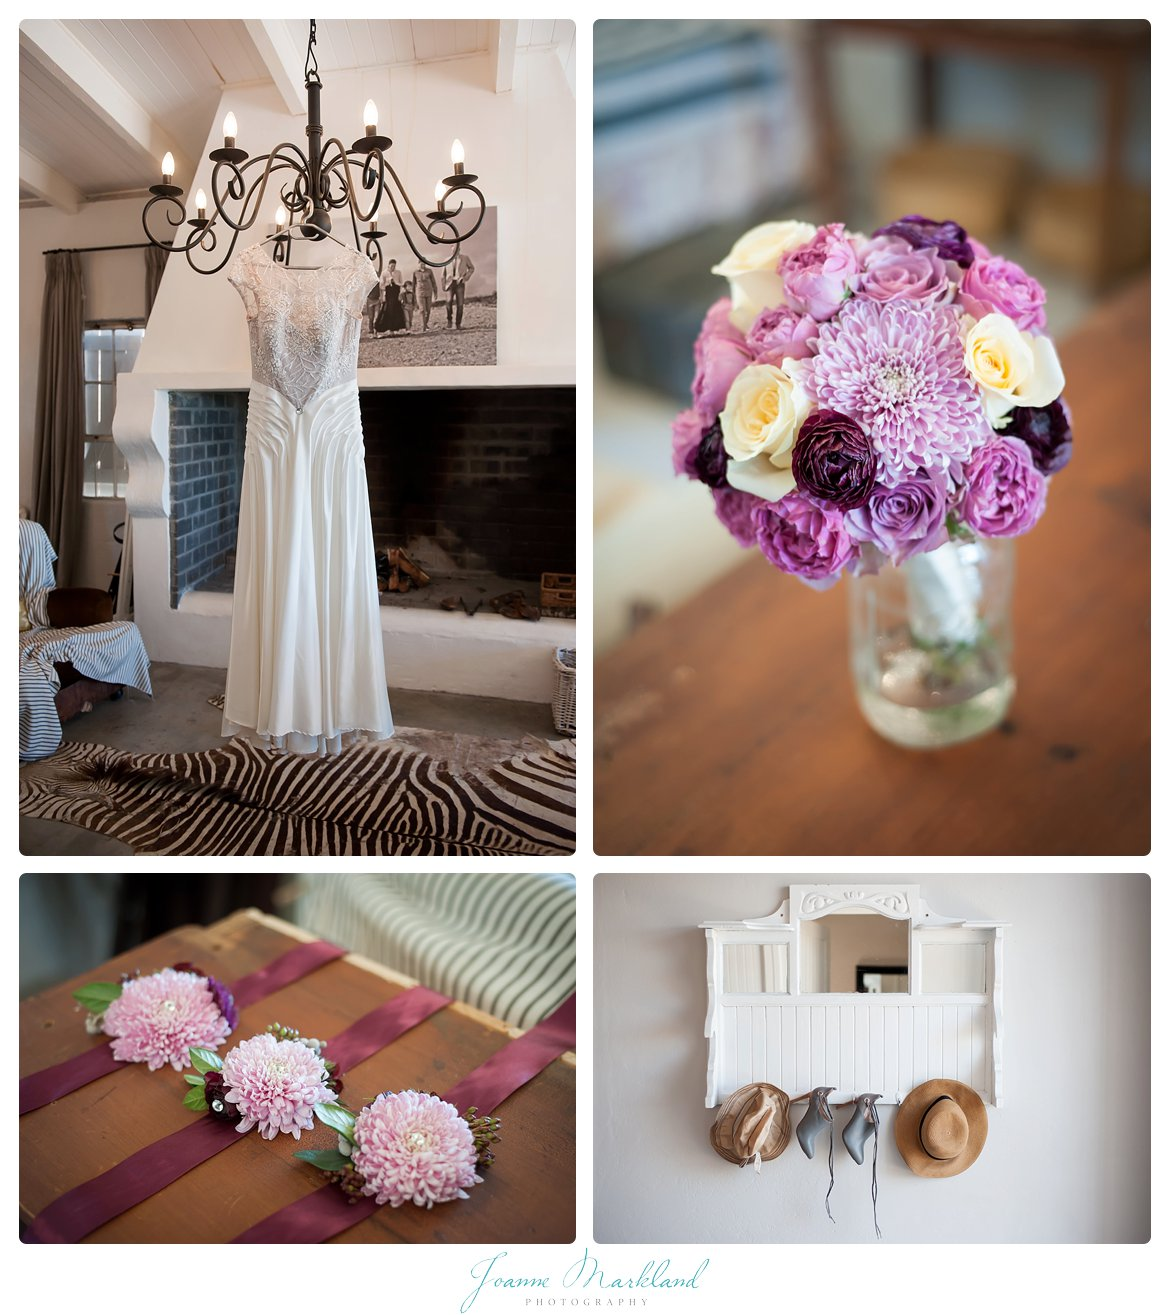 boorwater-wedding-hopefield-west-coast-cape-town-joanne-markland-photography-007